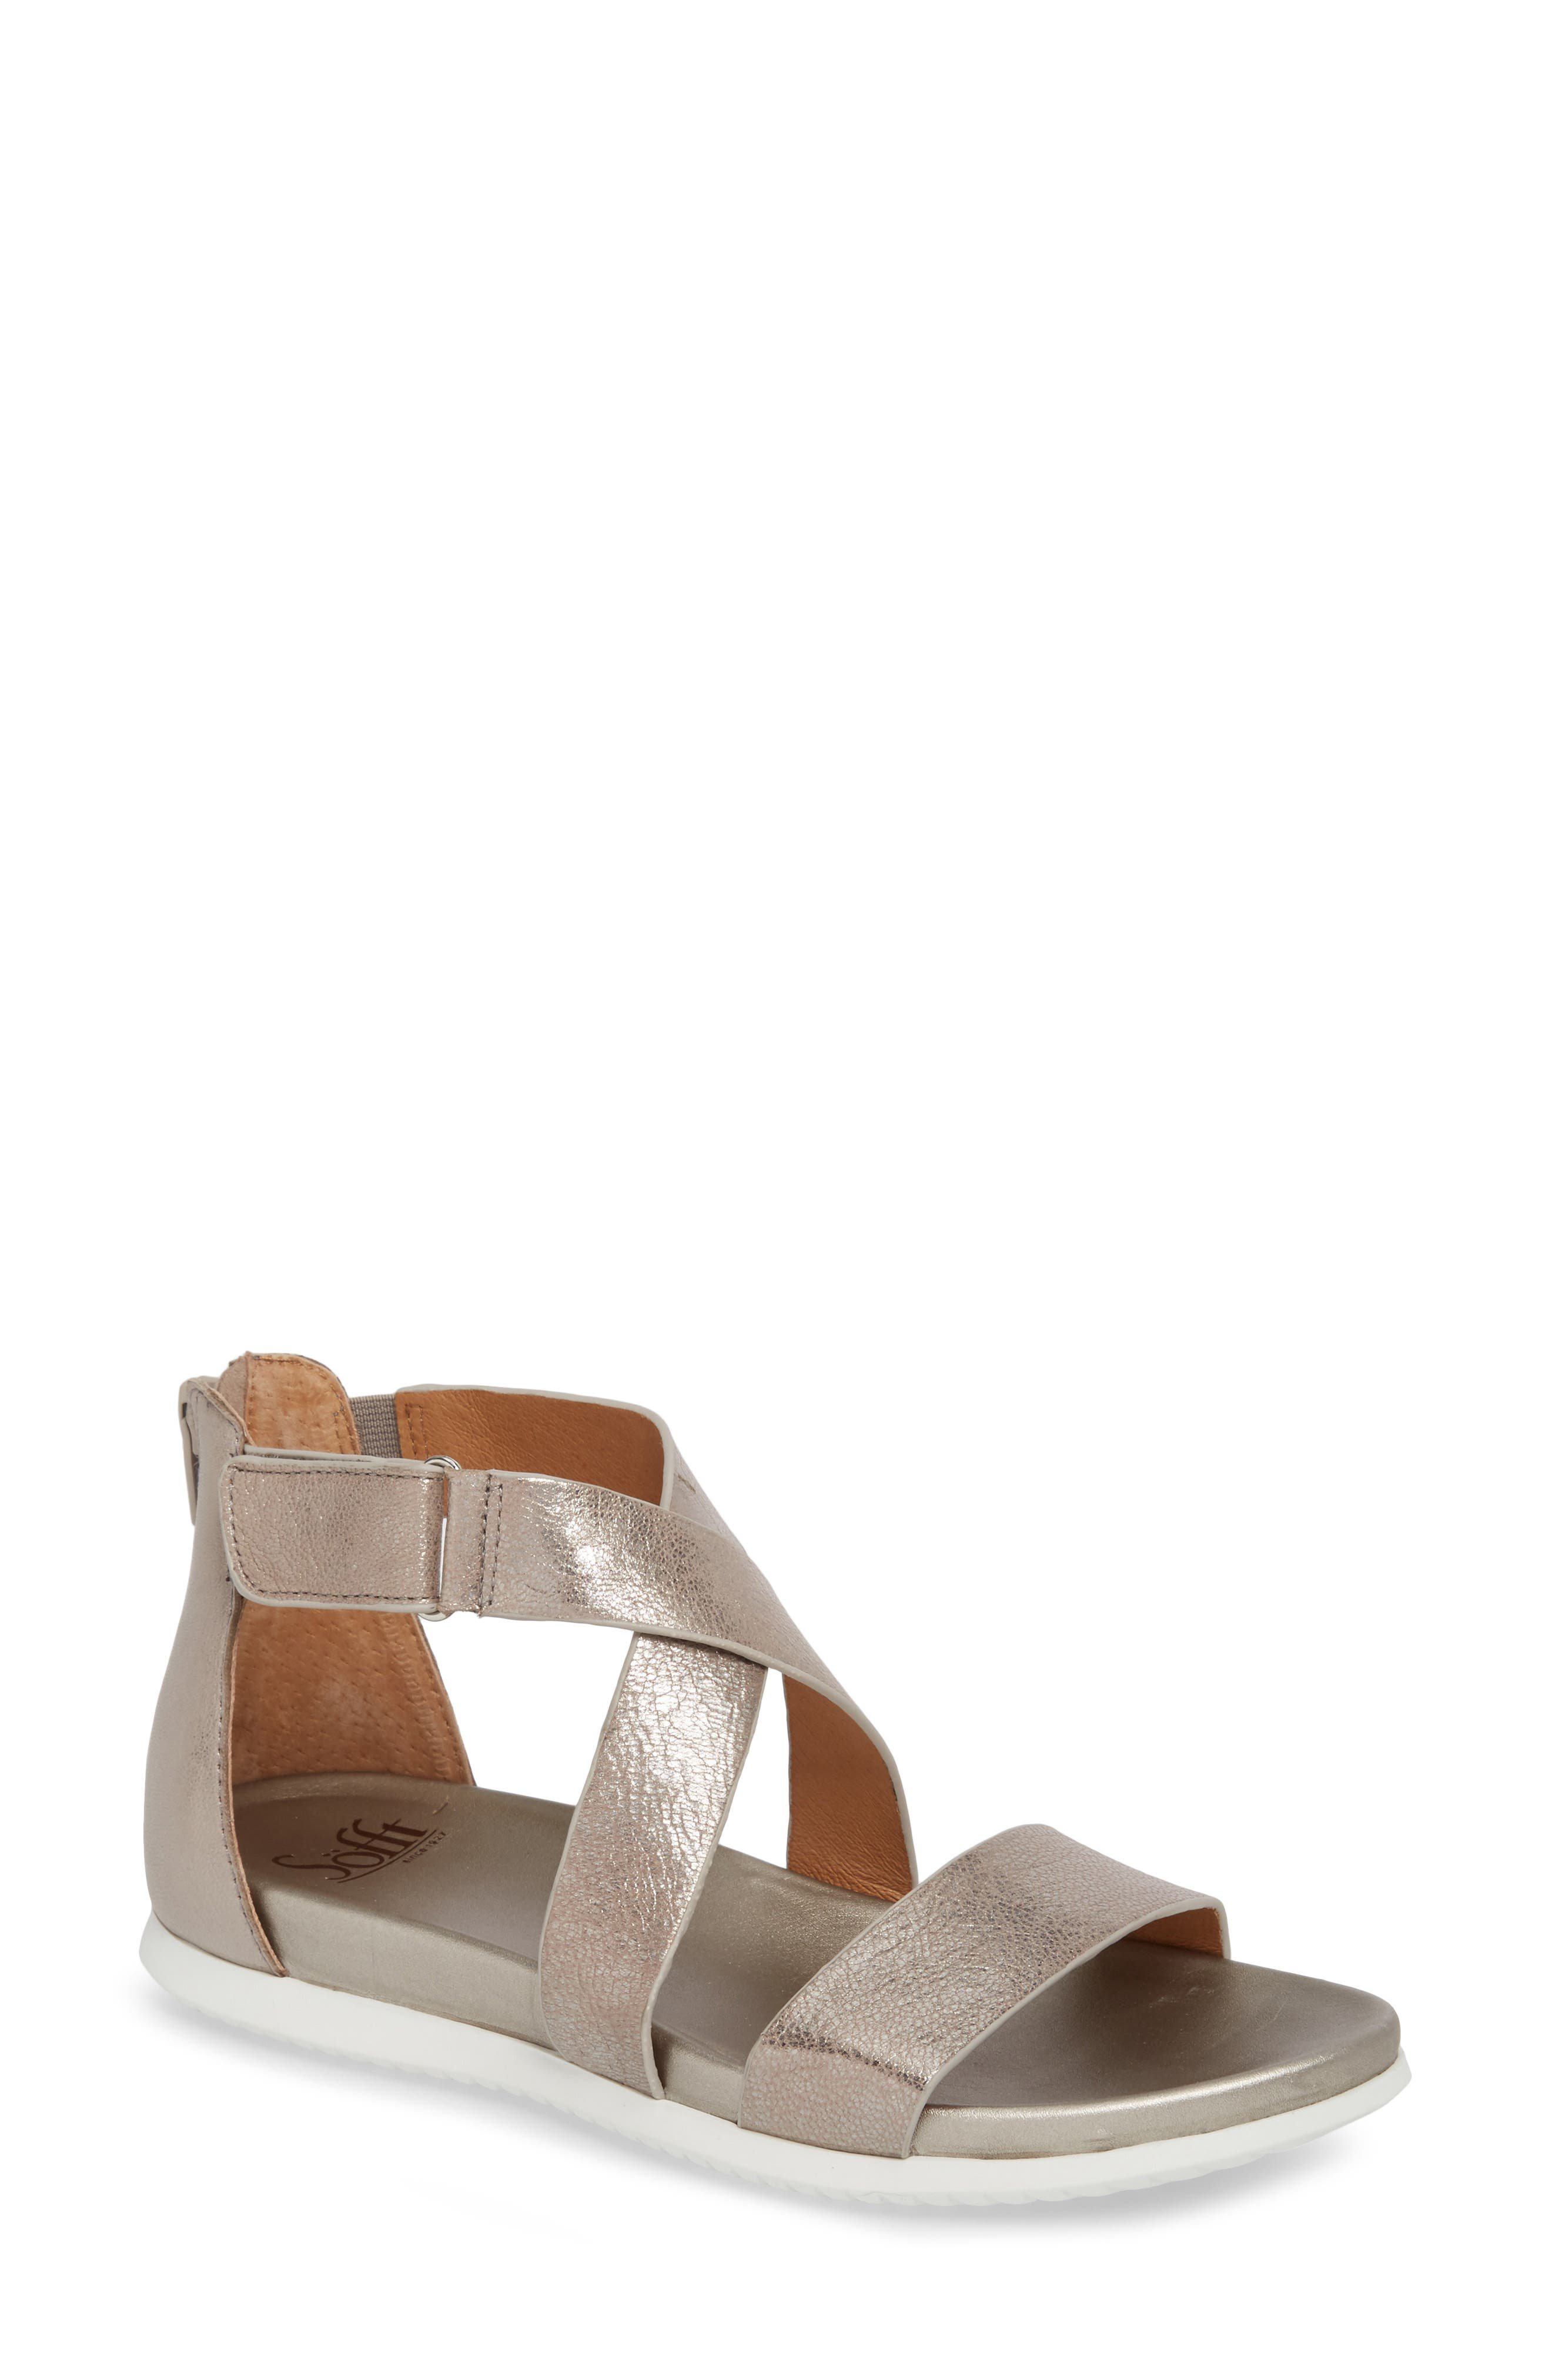 Fiora Sandal,                         Main,                         color, Anthracite Leather